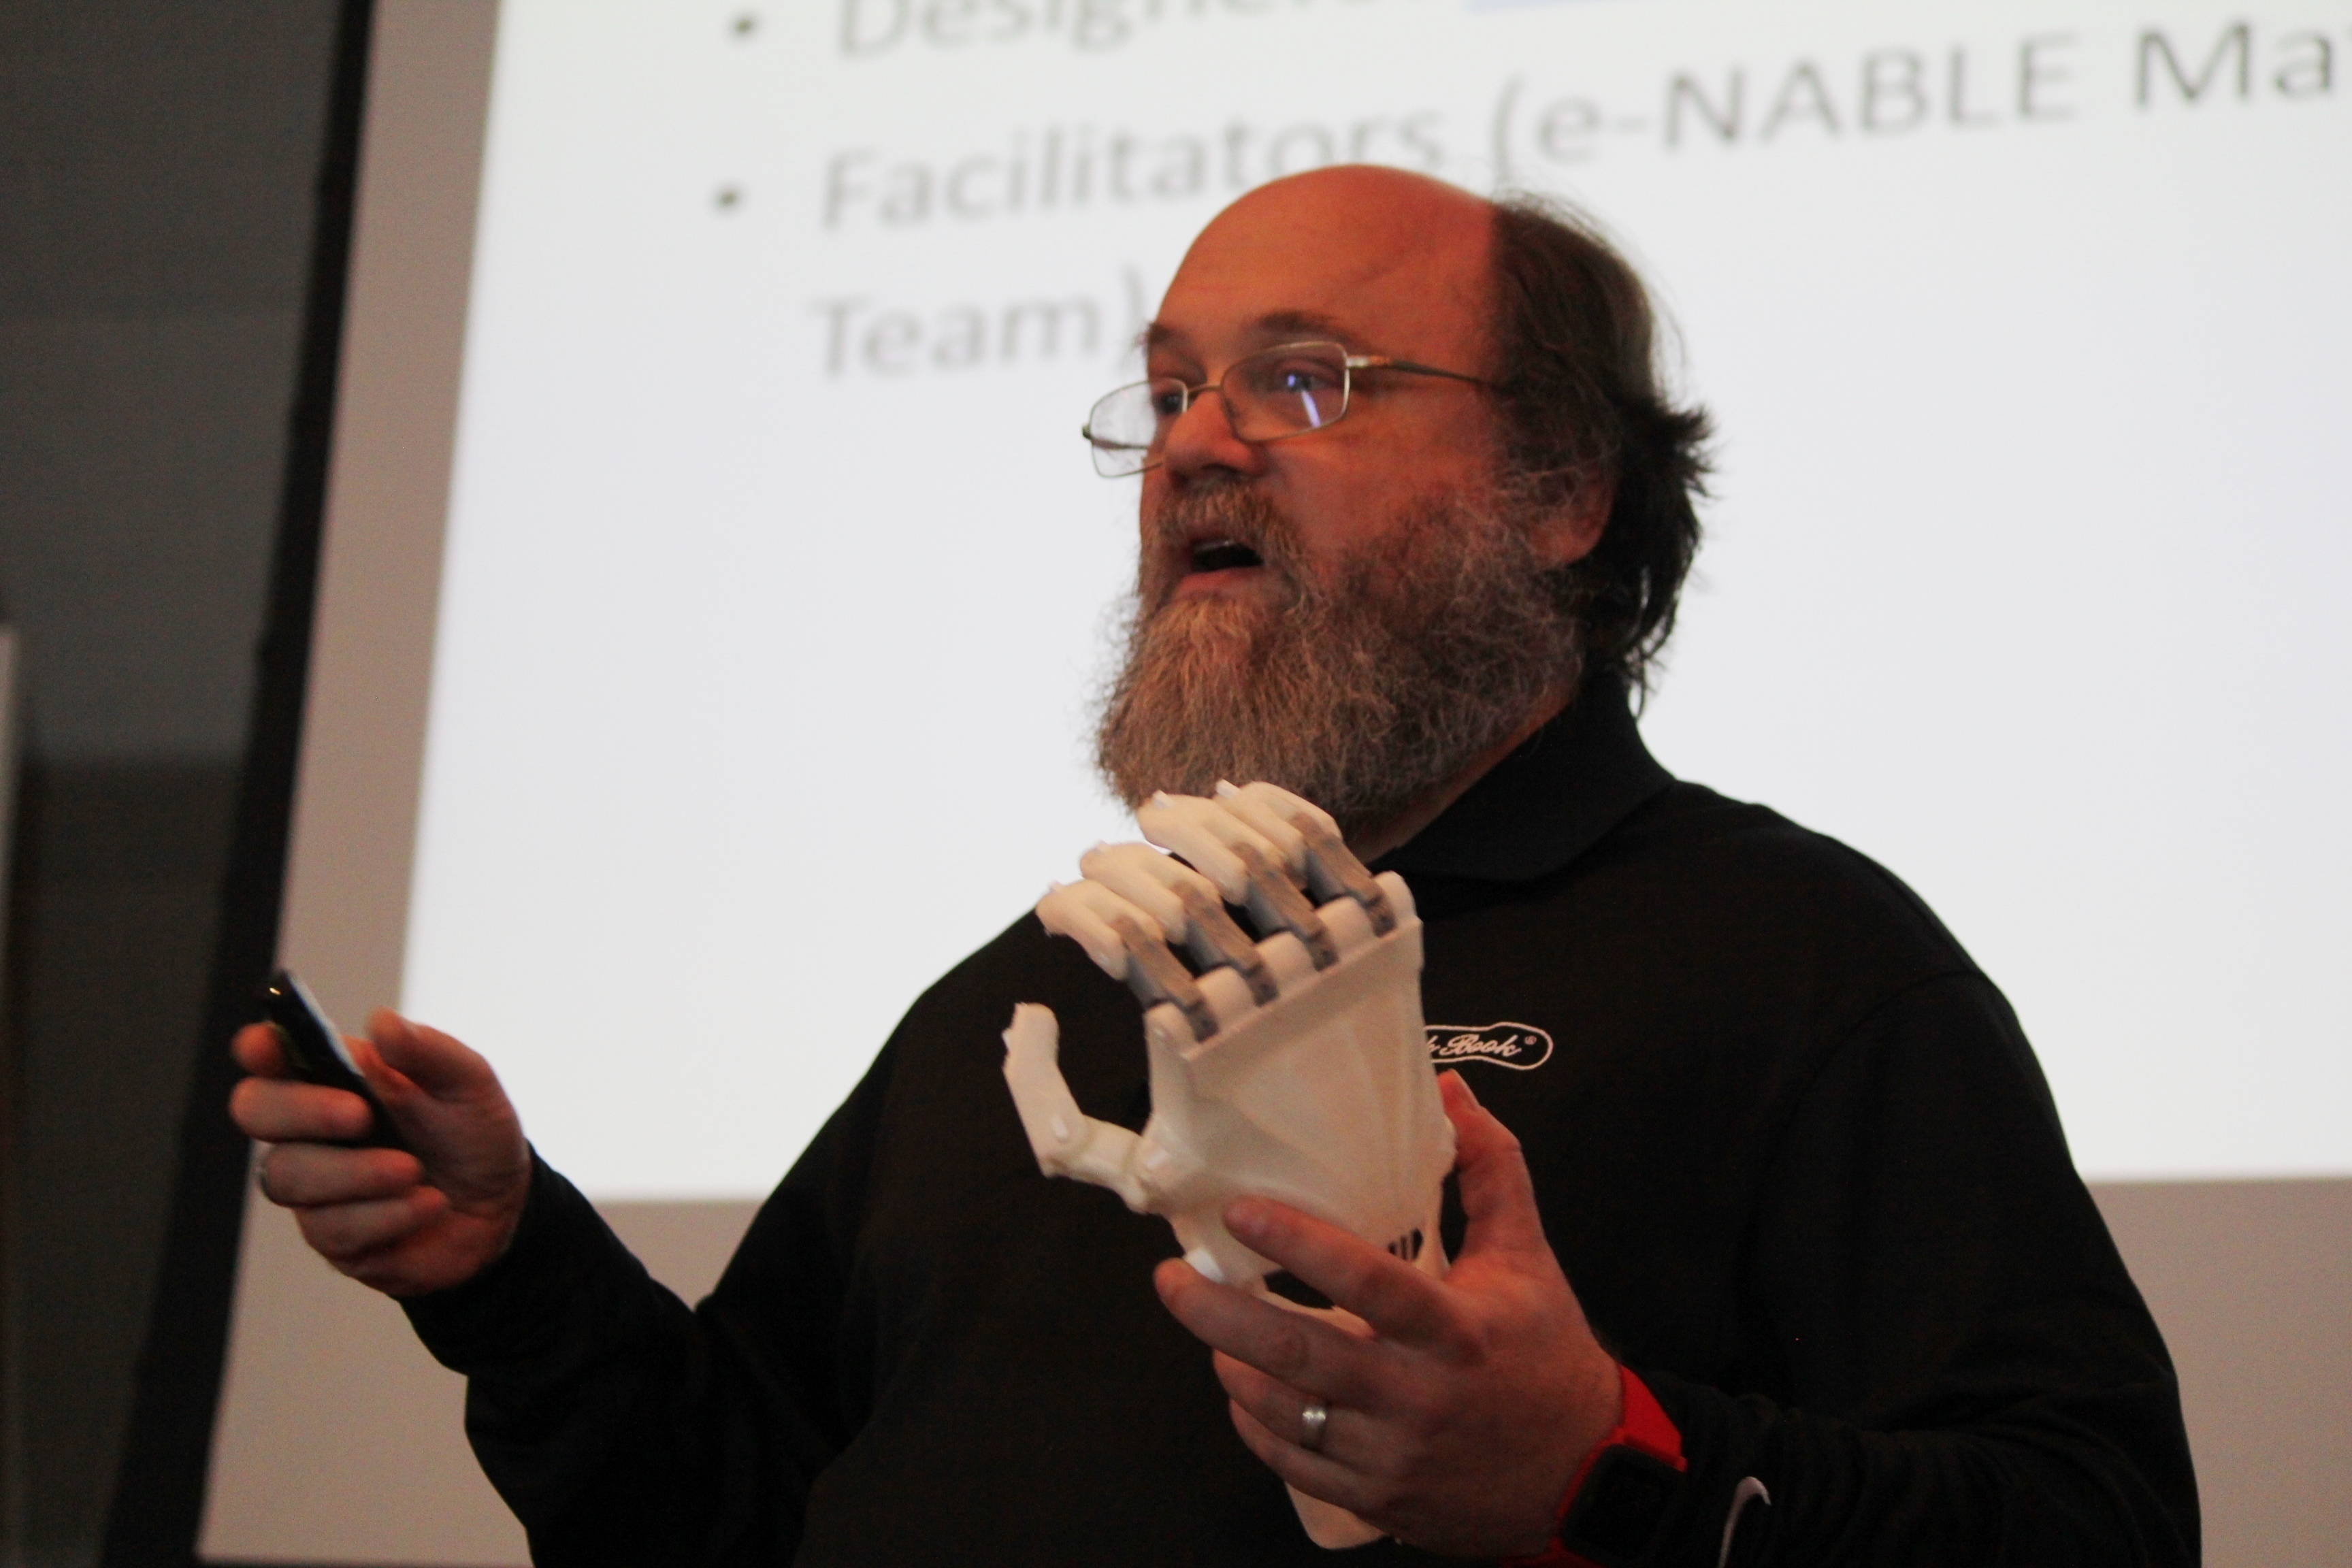 Laird Popkin, developer at e-NABLE, presents a more flexible, durable. and cheaper model of 3-D prosthetic hand at TEDxTampaRiverwalk 2015. (credit: Theresa Willingham via Flickr Creative Commons)